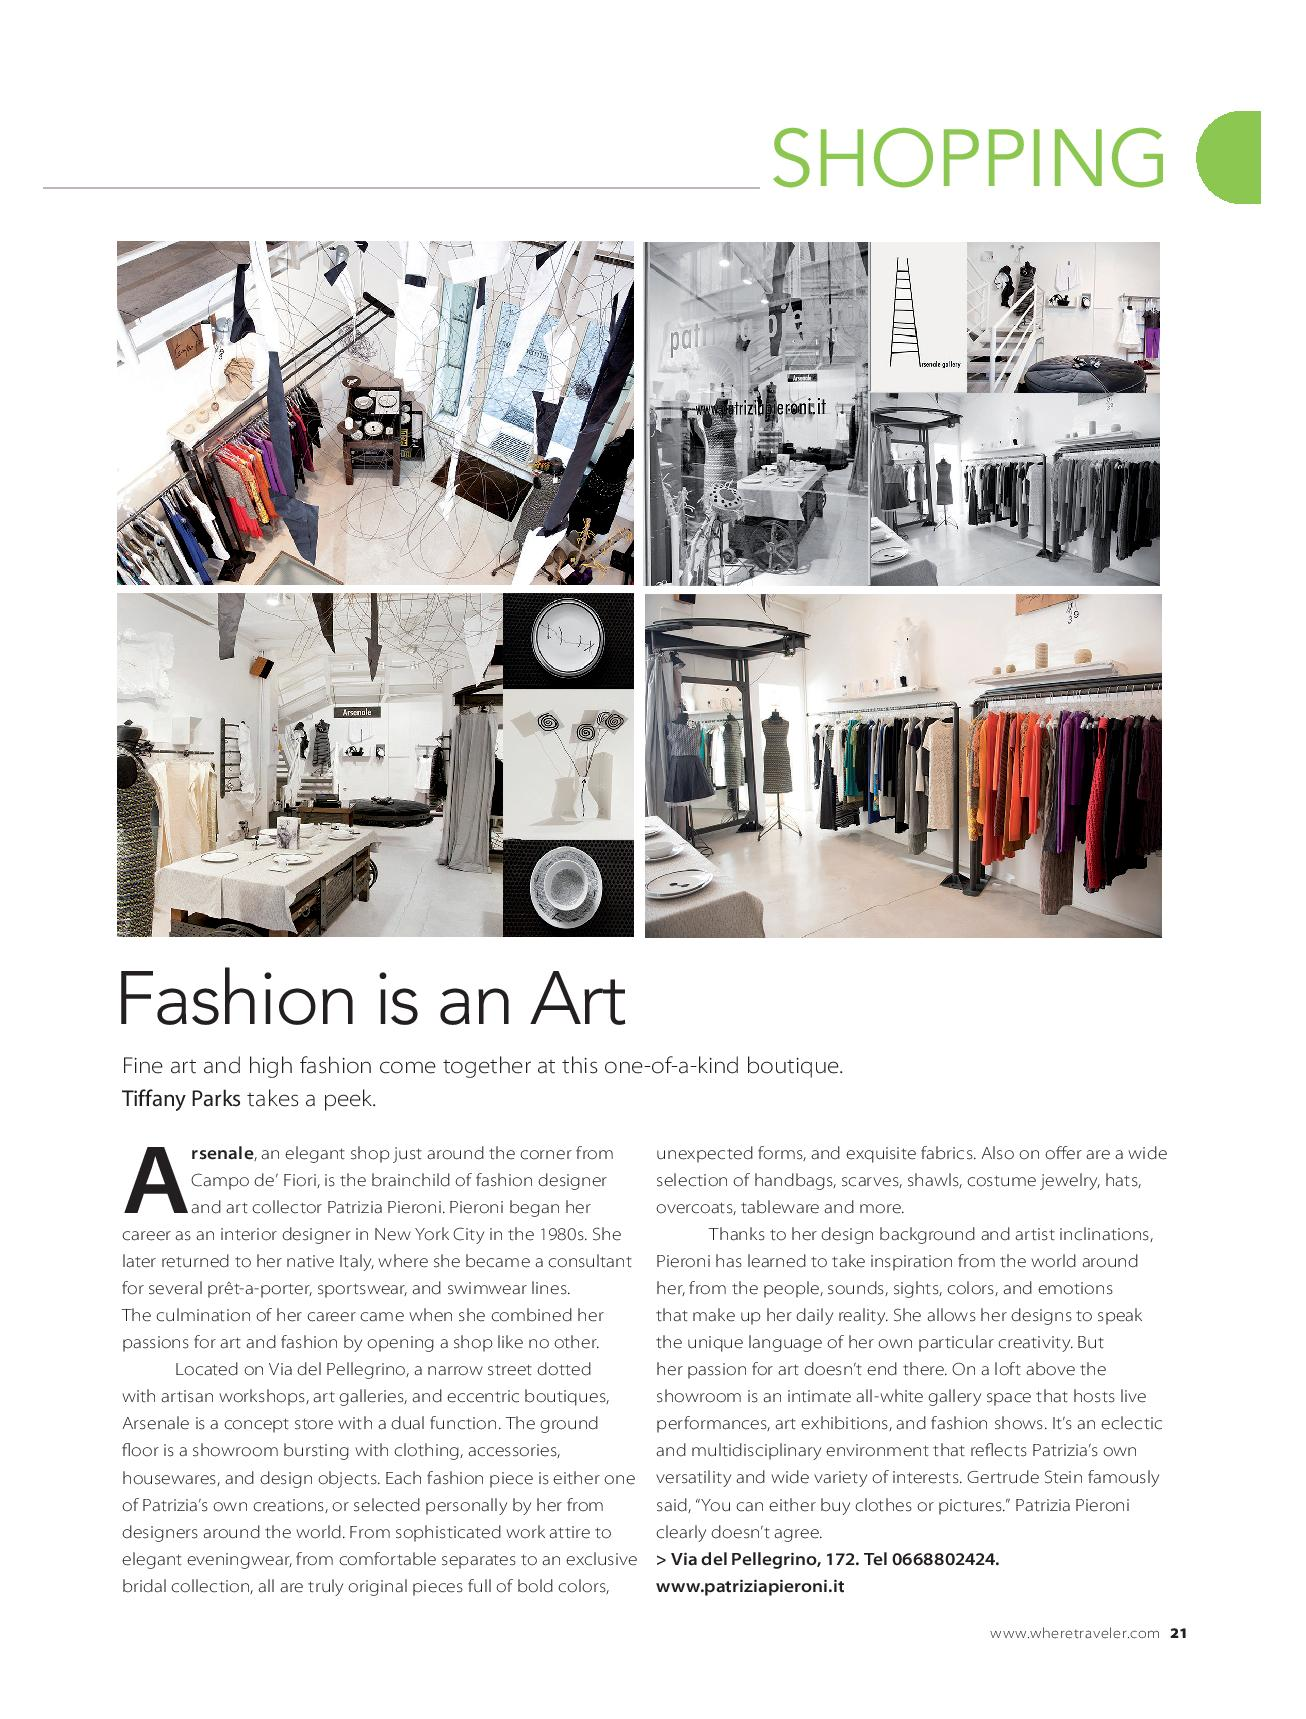 Fashion is an Art, Where Rome, October 2016-page-001.jpg